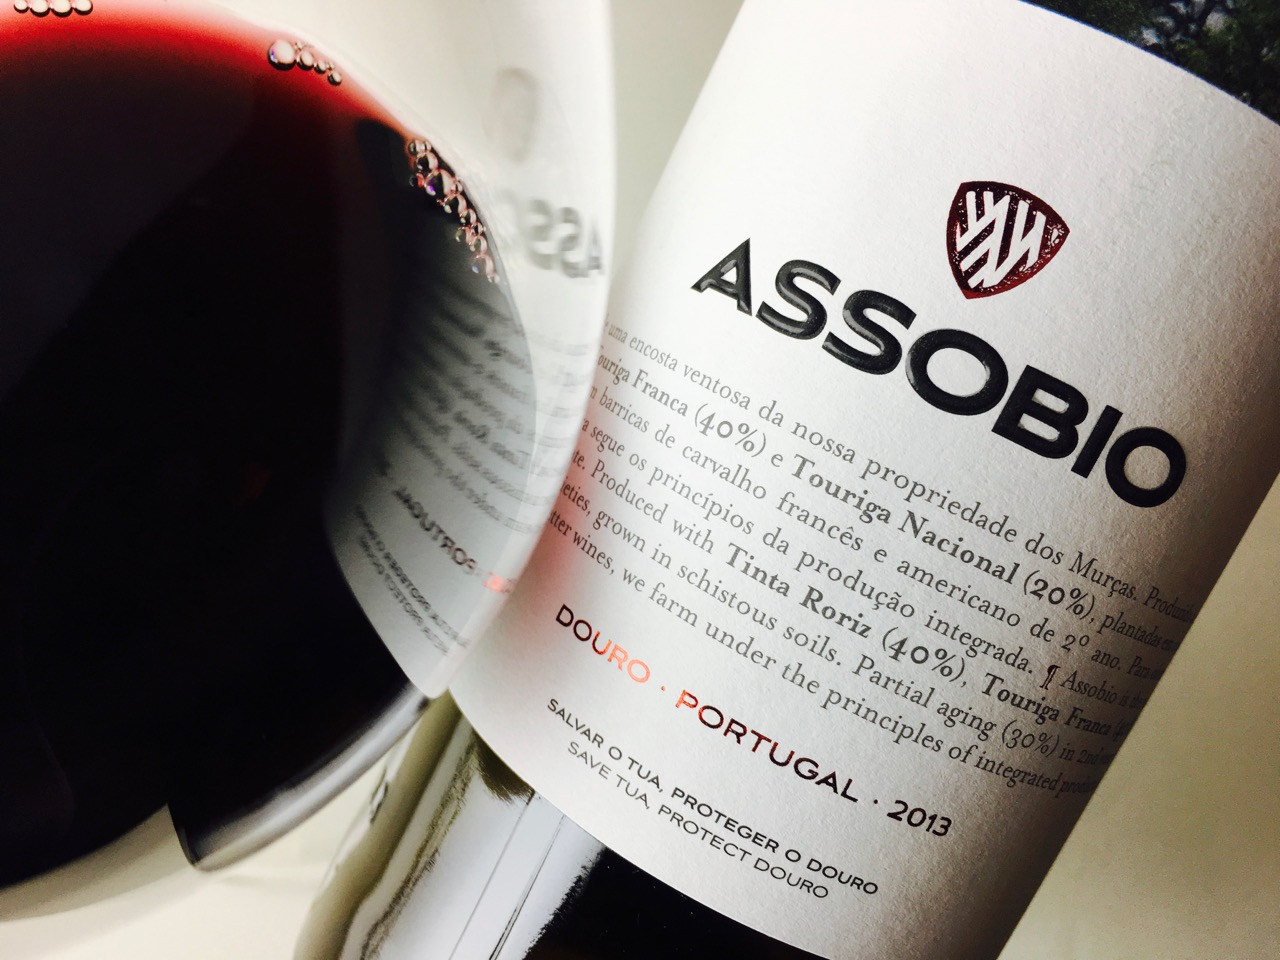 2013 Quinta dos Murças Red Blend Assoio Douro DO